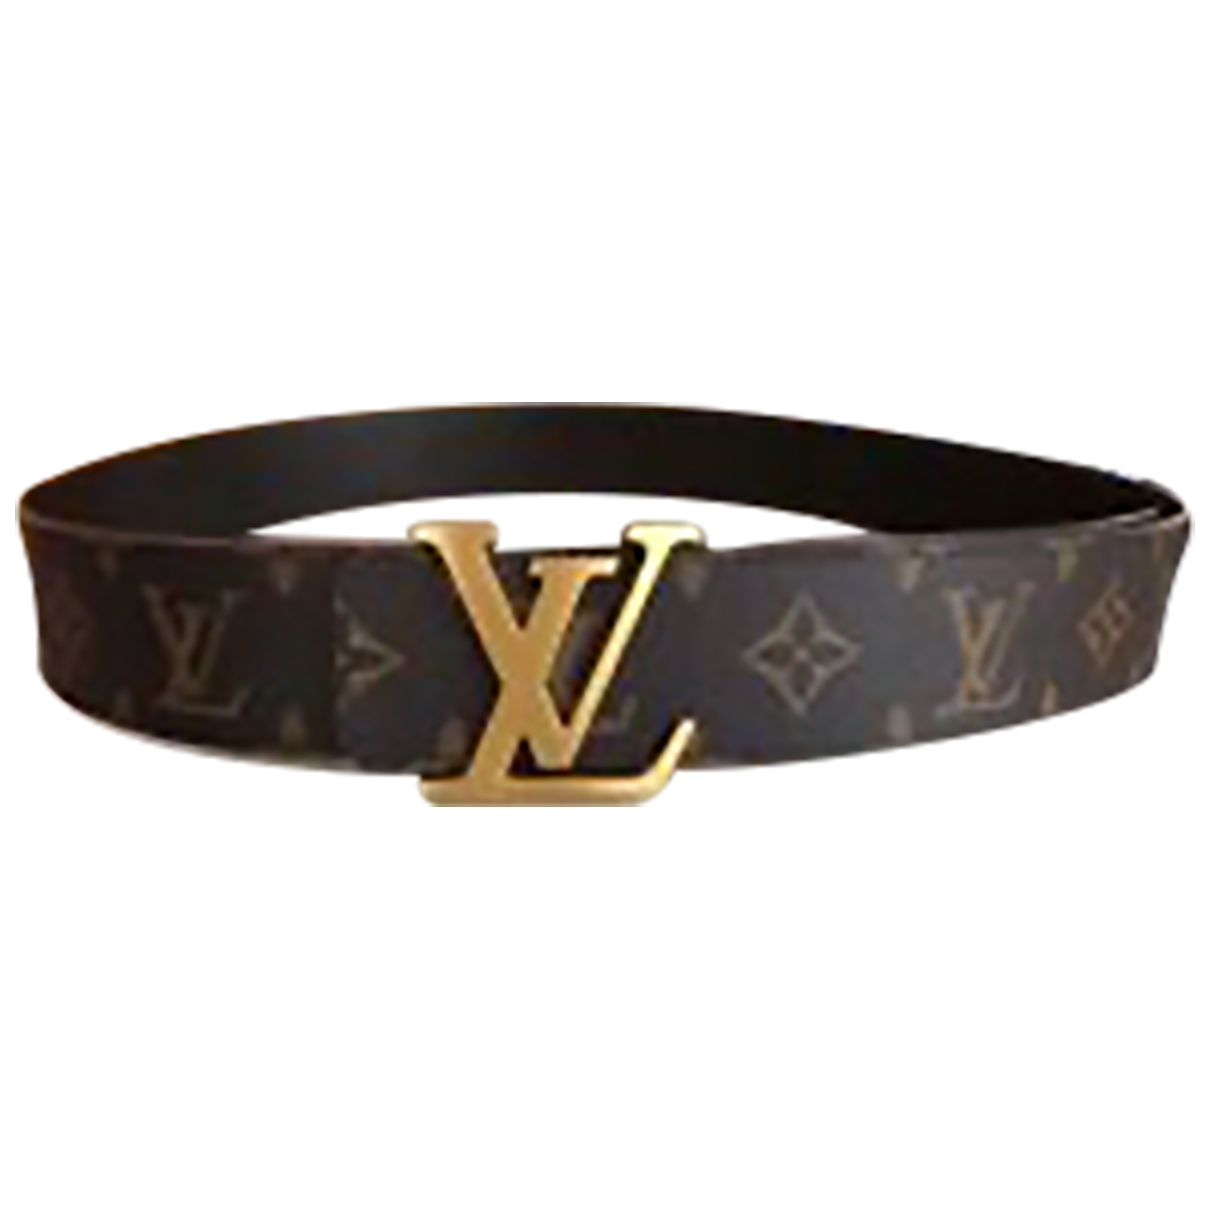 Louis Vuitton Initiales Cloth belt for Women XS International